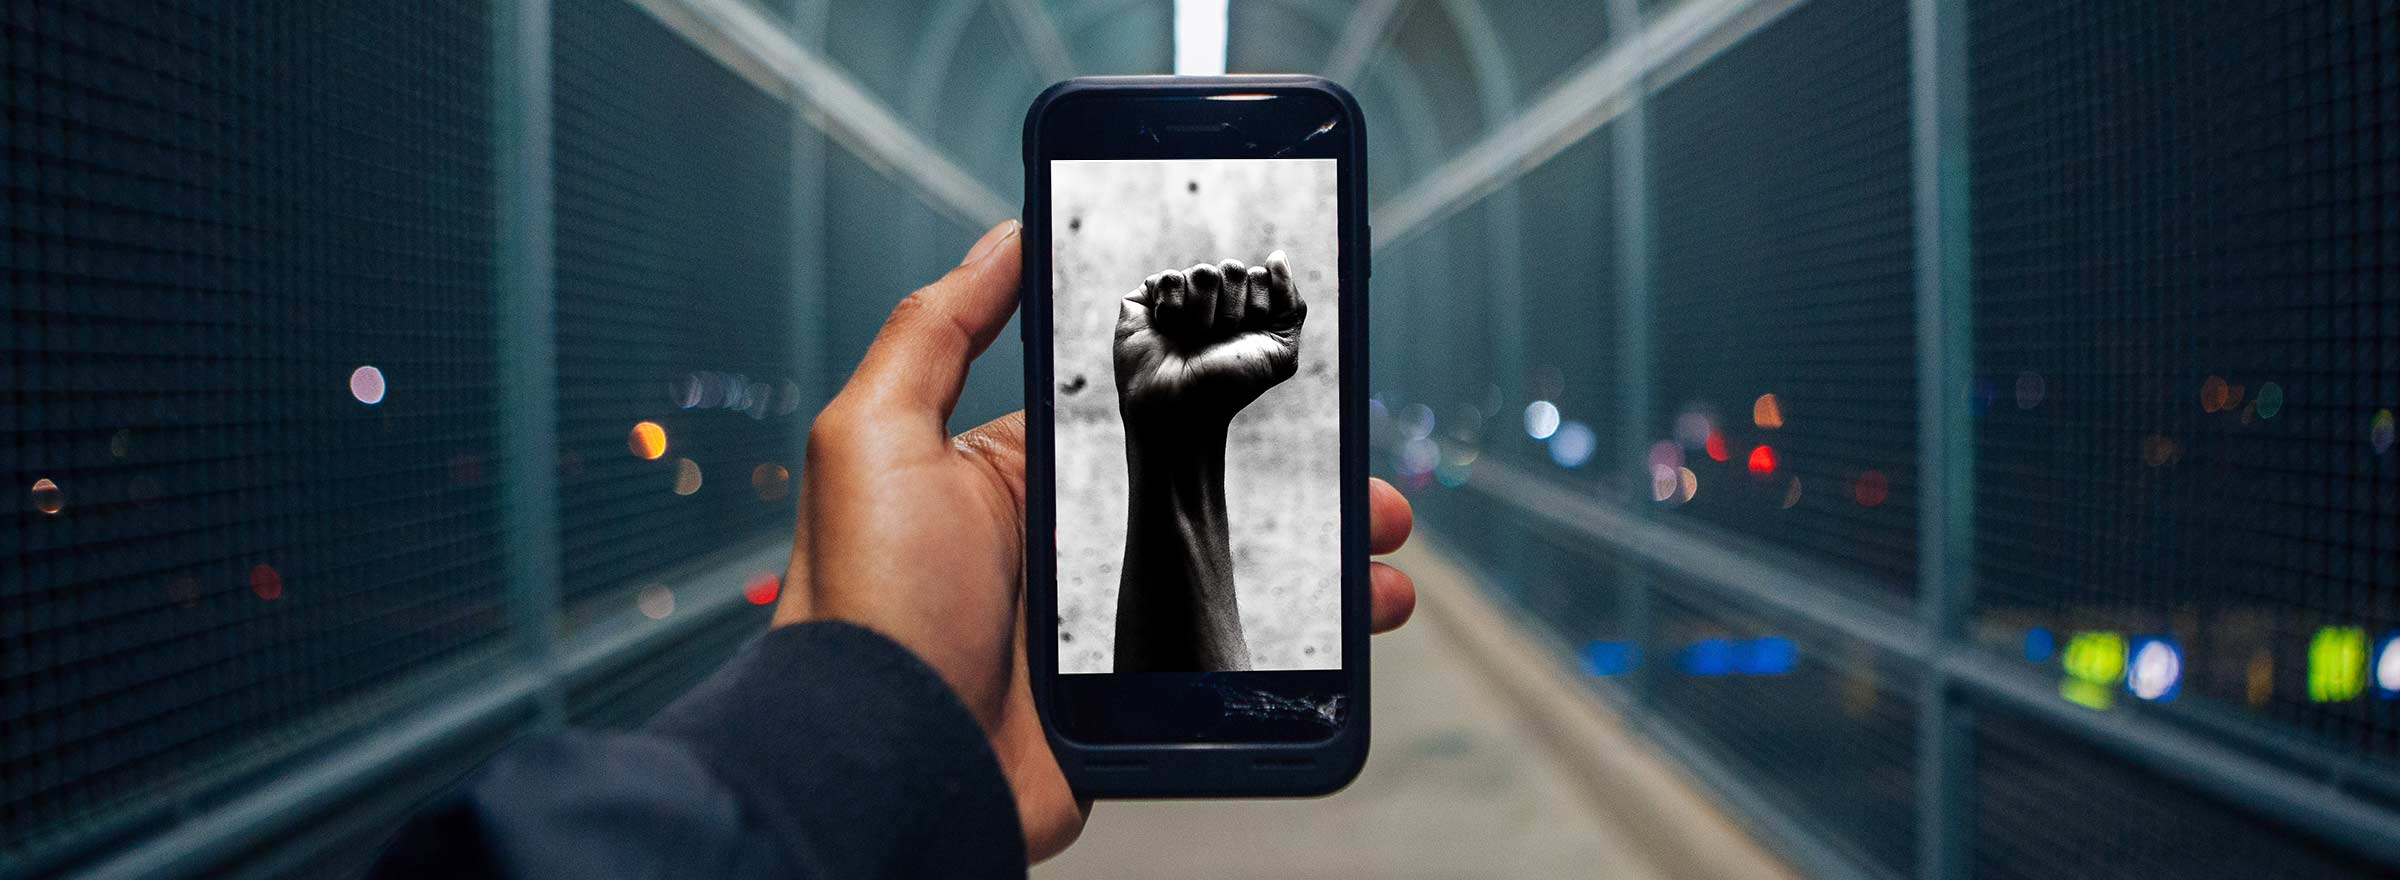 person looking at an image of a raised fist on a phone, symbolizing how public good app house is empowering positive social change